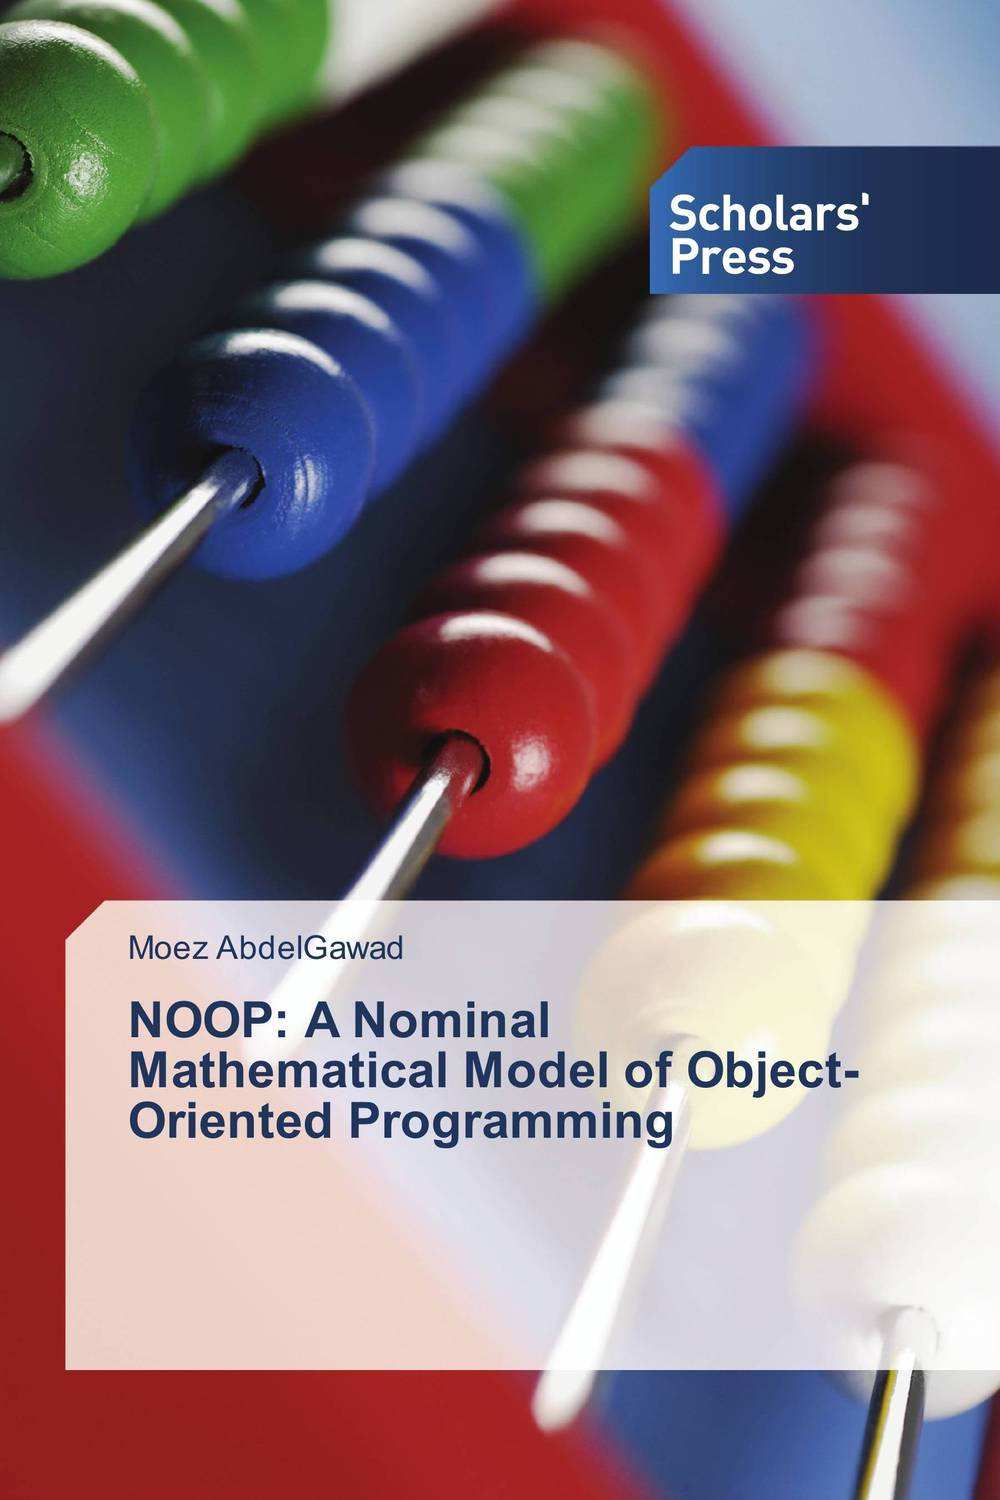 NOOP: A Nominal Mathematical Model of Object-Oriented Programming oo odo of deuil de profectione ludovici vii in orientem